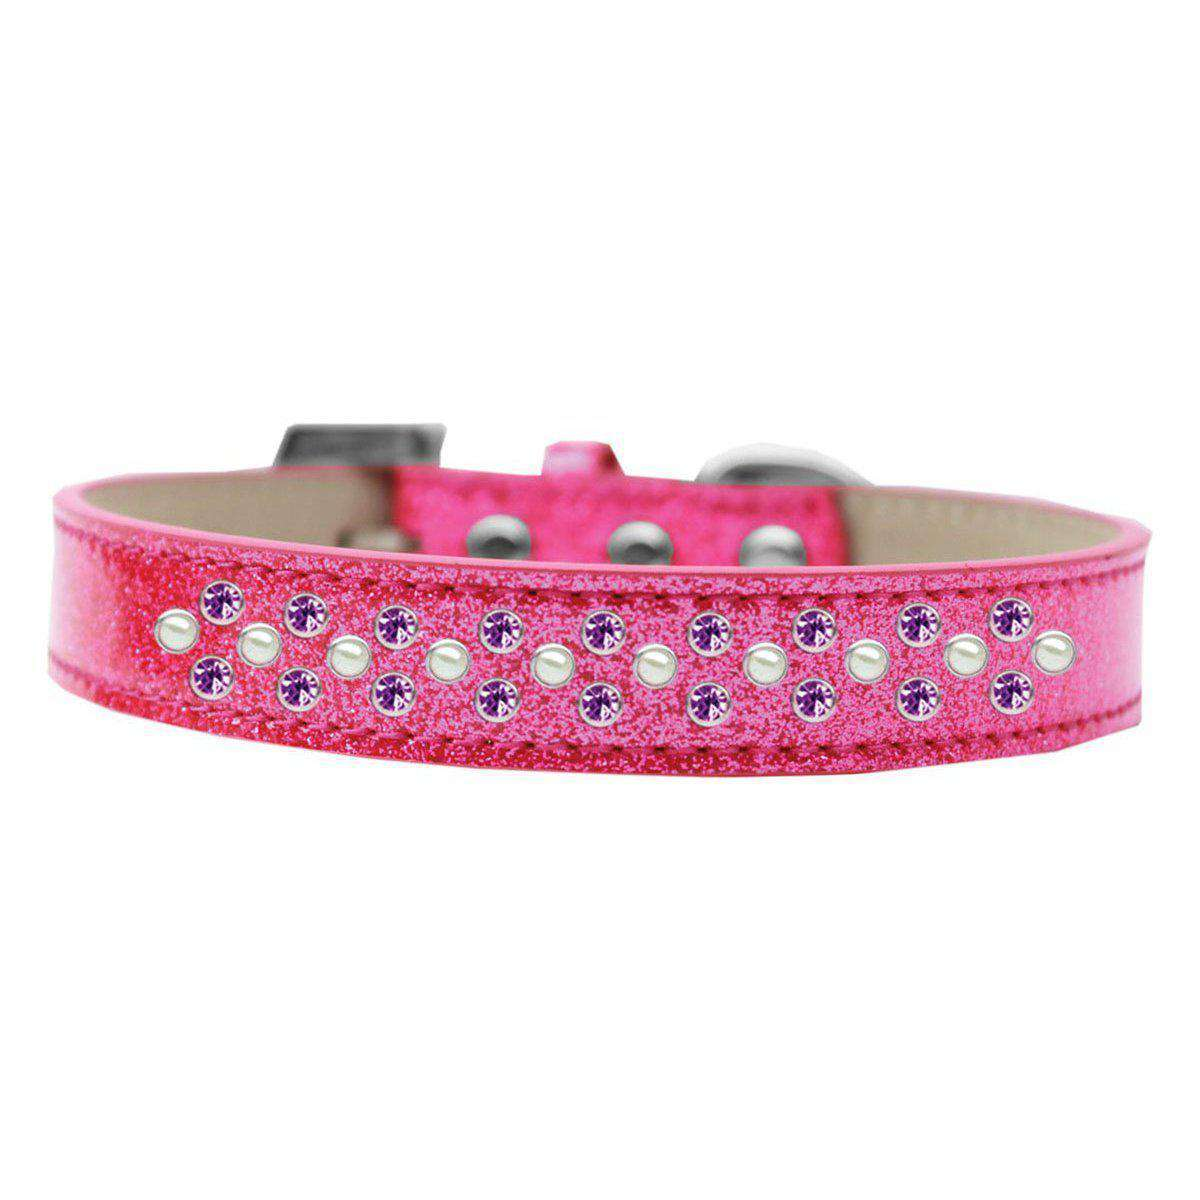 Mirage Pet Products Sprinkles Ice Cream Dog Collar Pearl And Purple Crystals Size 16 - Pink-Mirage Pet Products-DirtyFurClothing